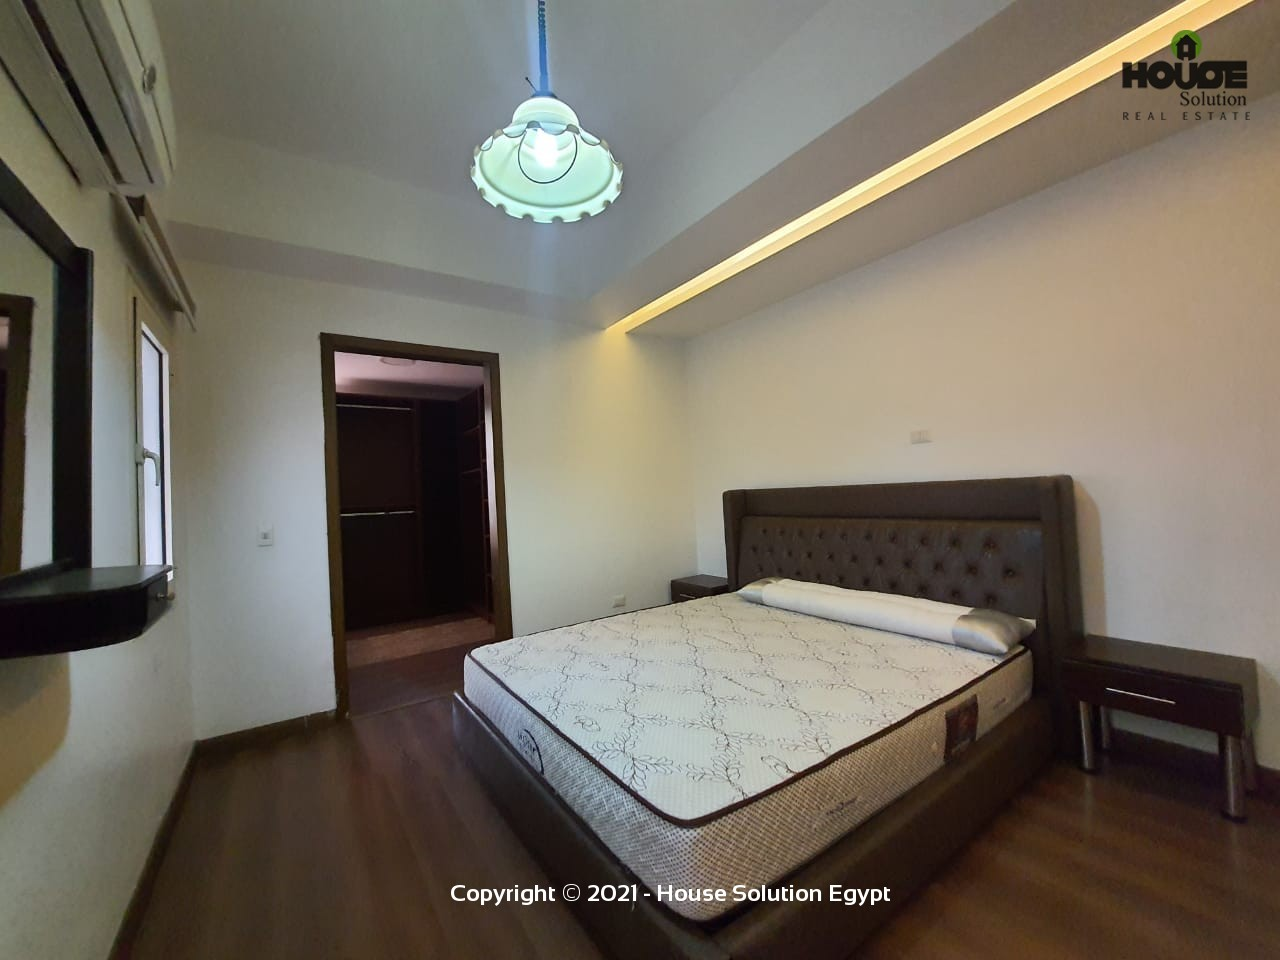 Spacious Well Finished Apartment For Sale In Sarayat El Maadi Cairo Egypt - 4974 Featured Image